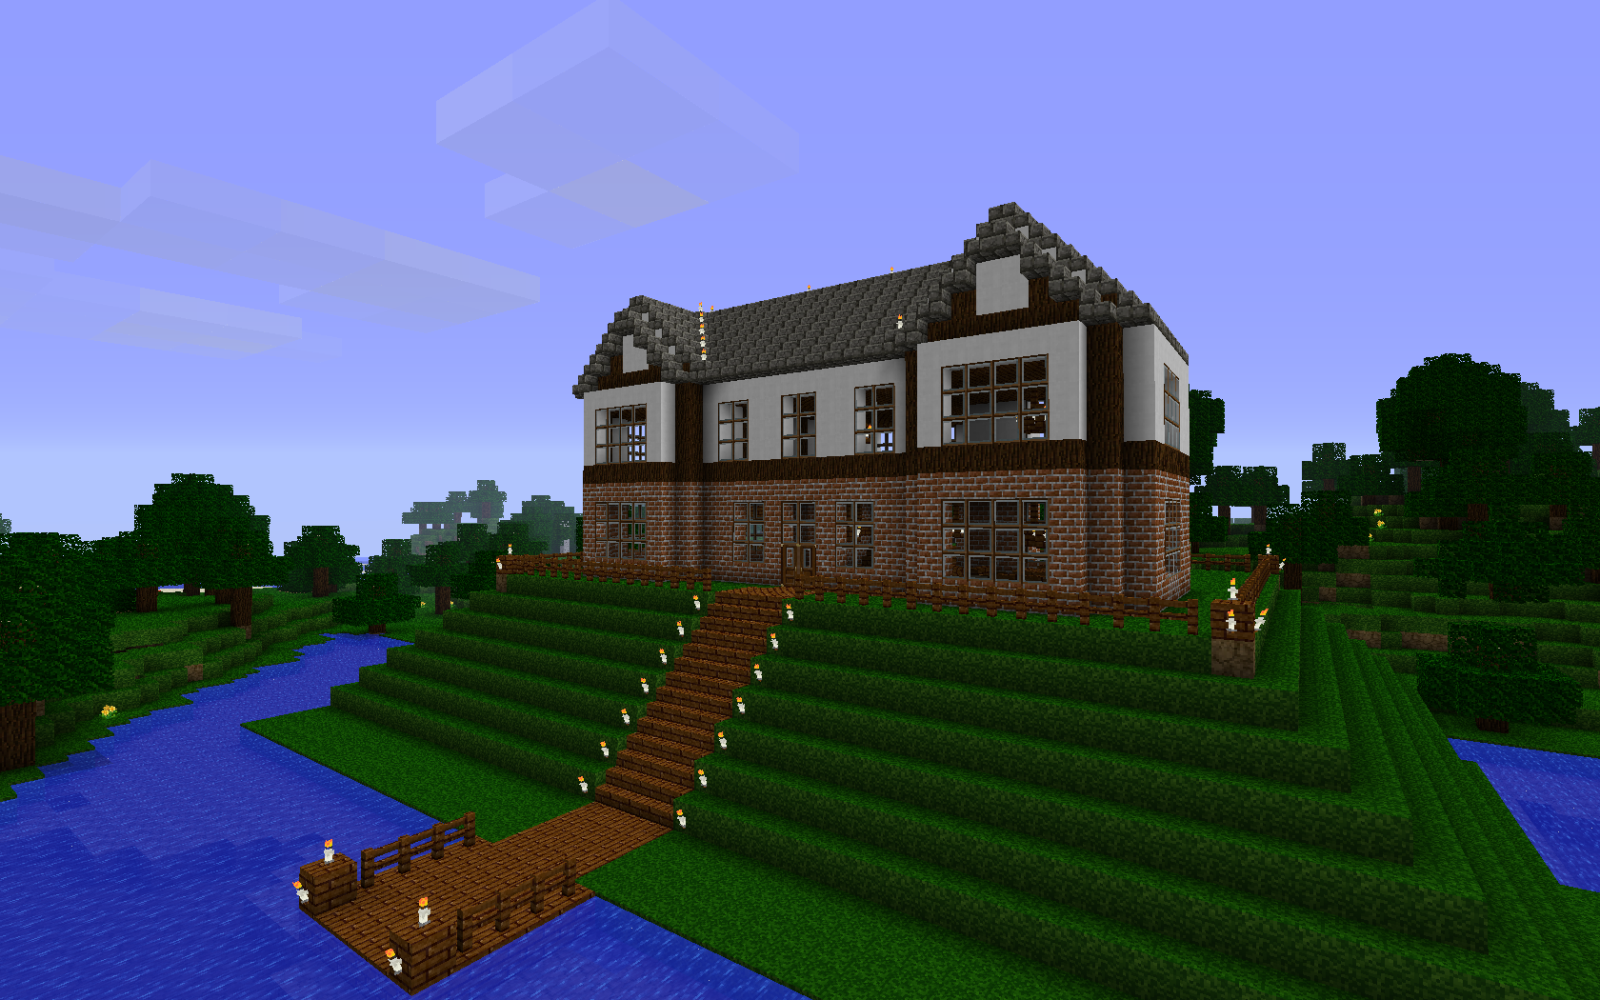 Minecraft homes aesthetically pleasing homesbuildings revamp minecraft homes aesthetically pleasing homesbuildings revamp minecraft forum page malvernweather Gallery